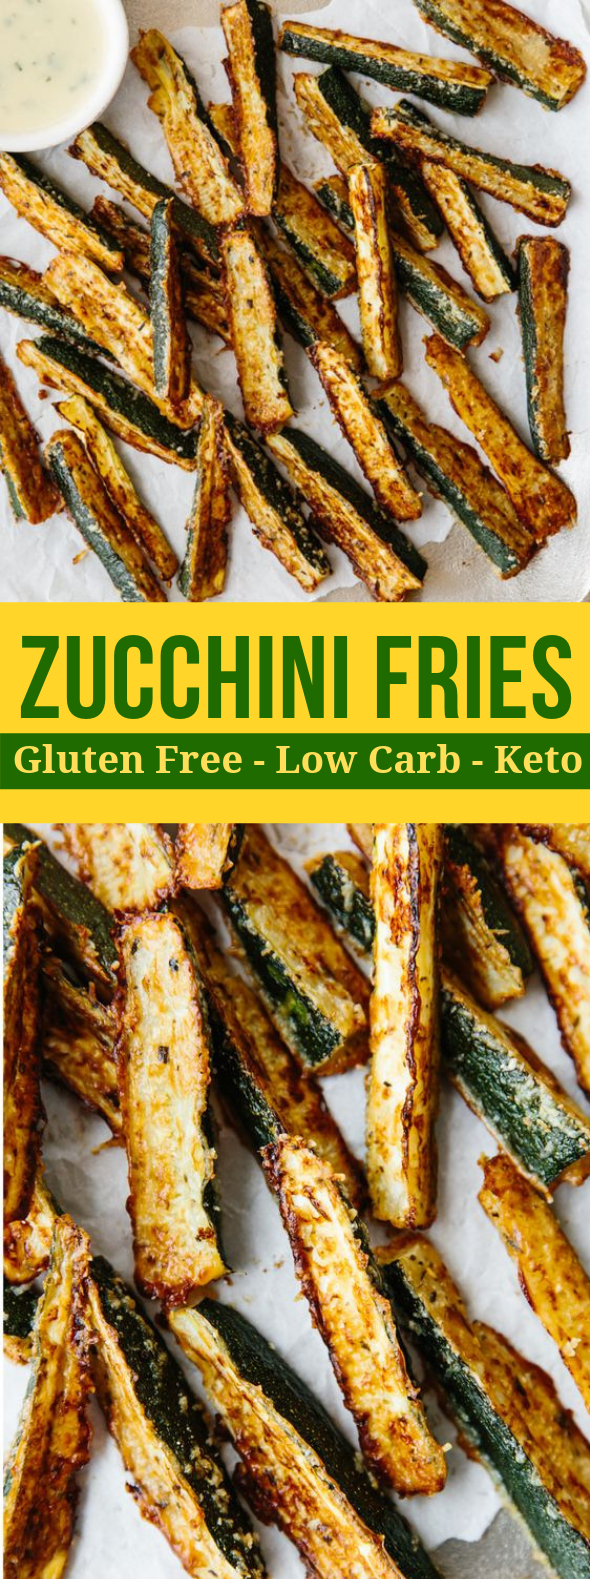 BAKED ZUCCHINI FRIES (GLUTEN-FREE, LOW-CARB) #diet #lowcarb